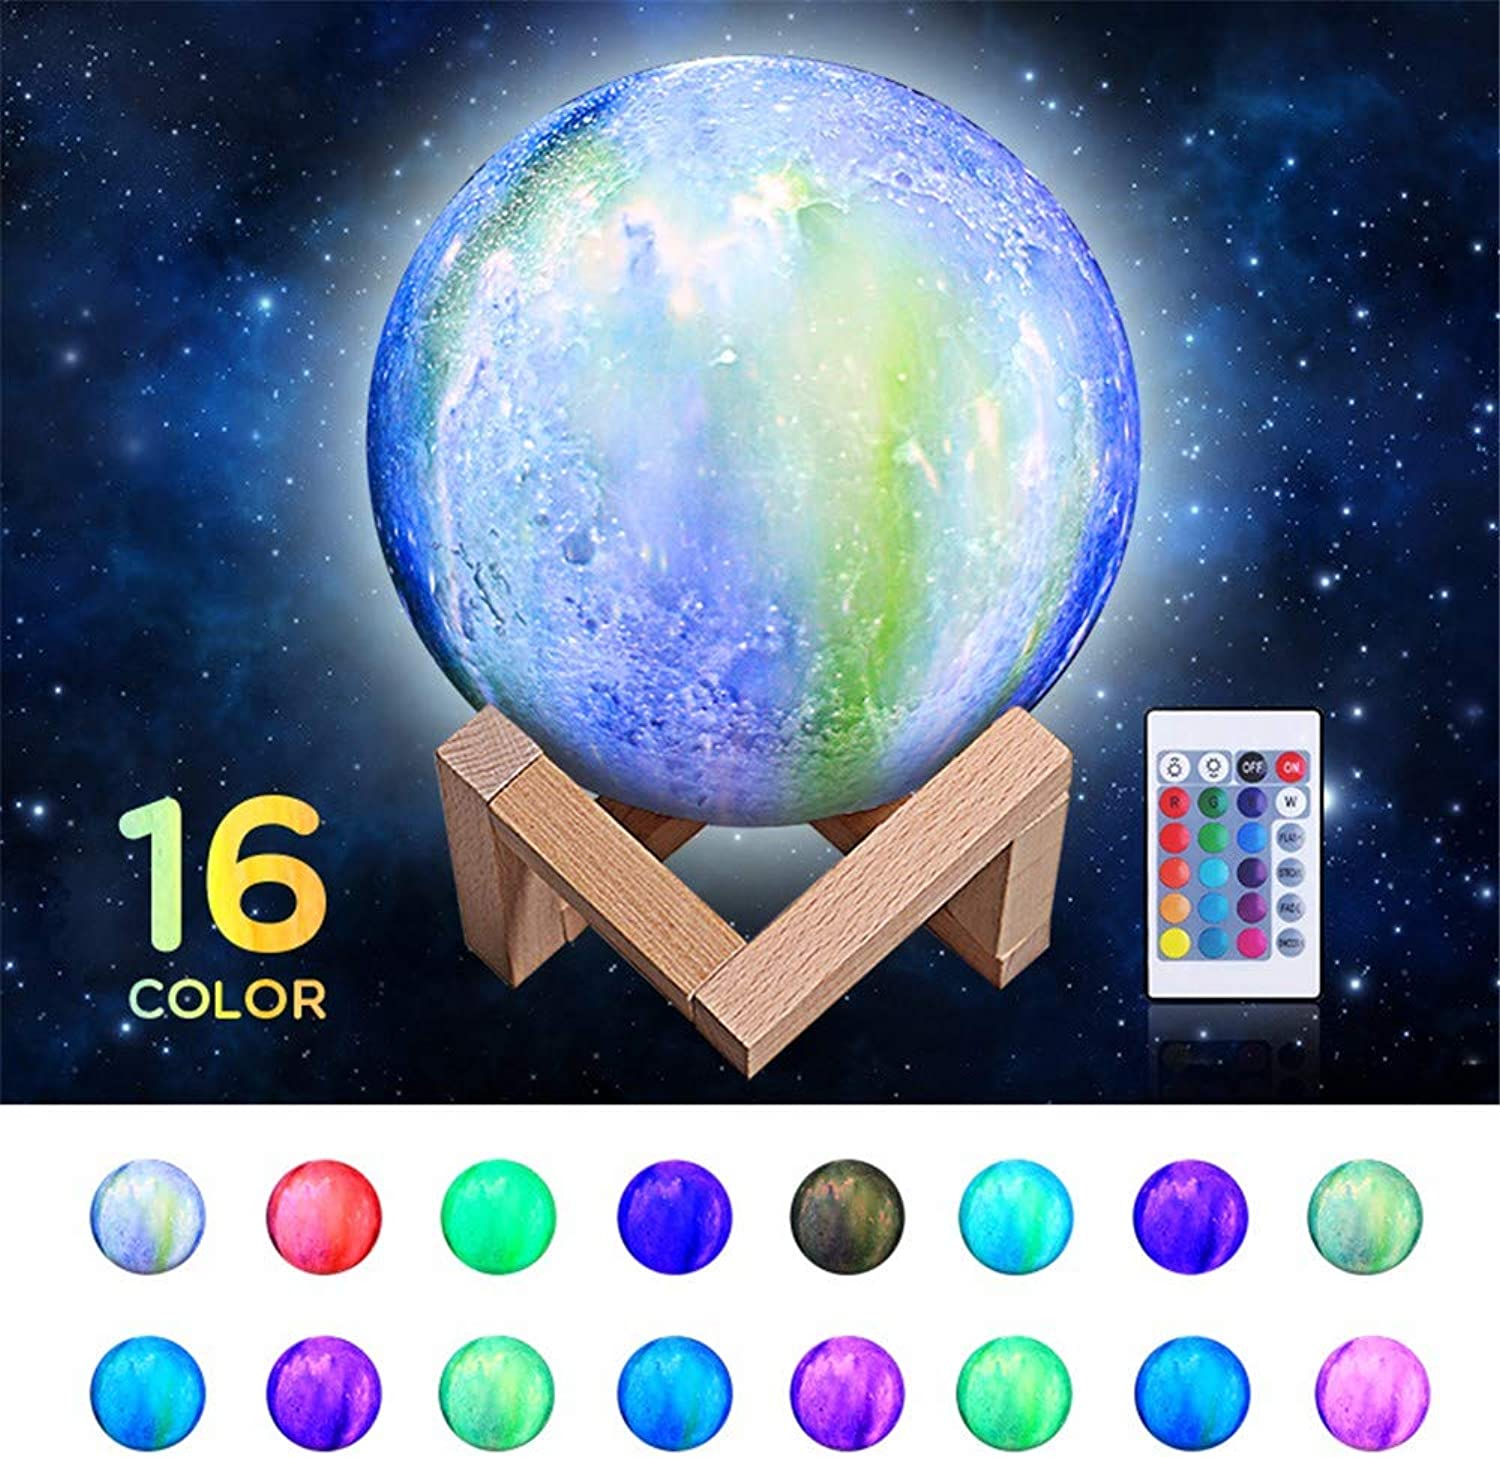 DZXGY 16color 3D Print Star Moon Lamp Change Touch Night Light Home Decor Creative Gift USB Rechargeable Night Light Galaxy Lamp12cm